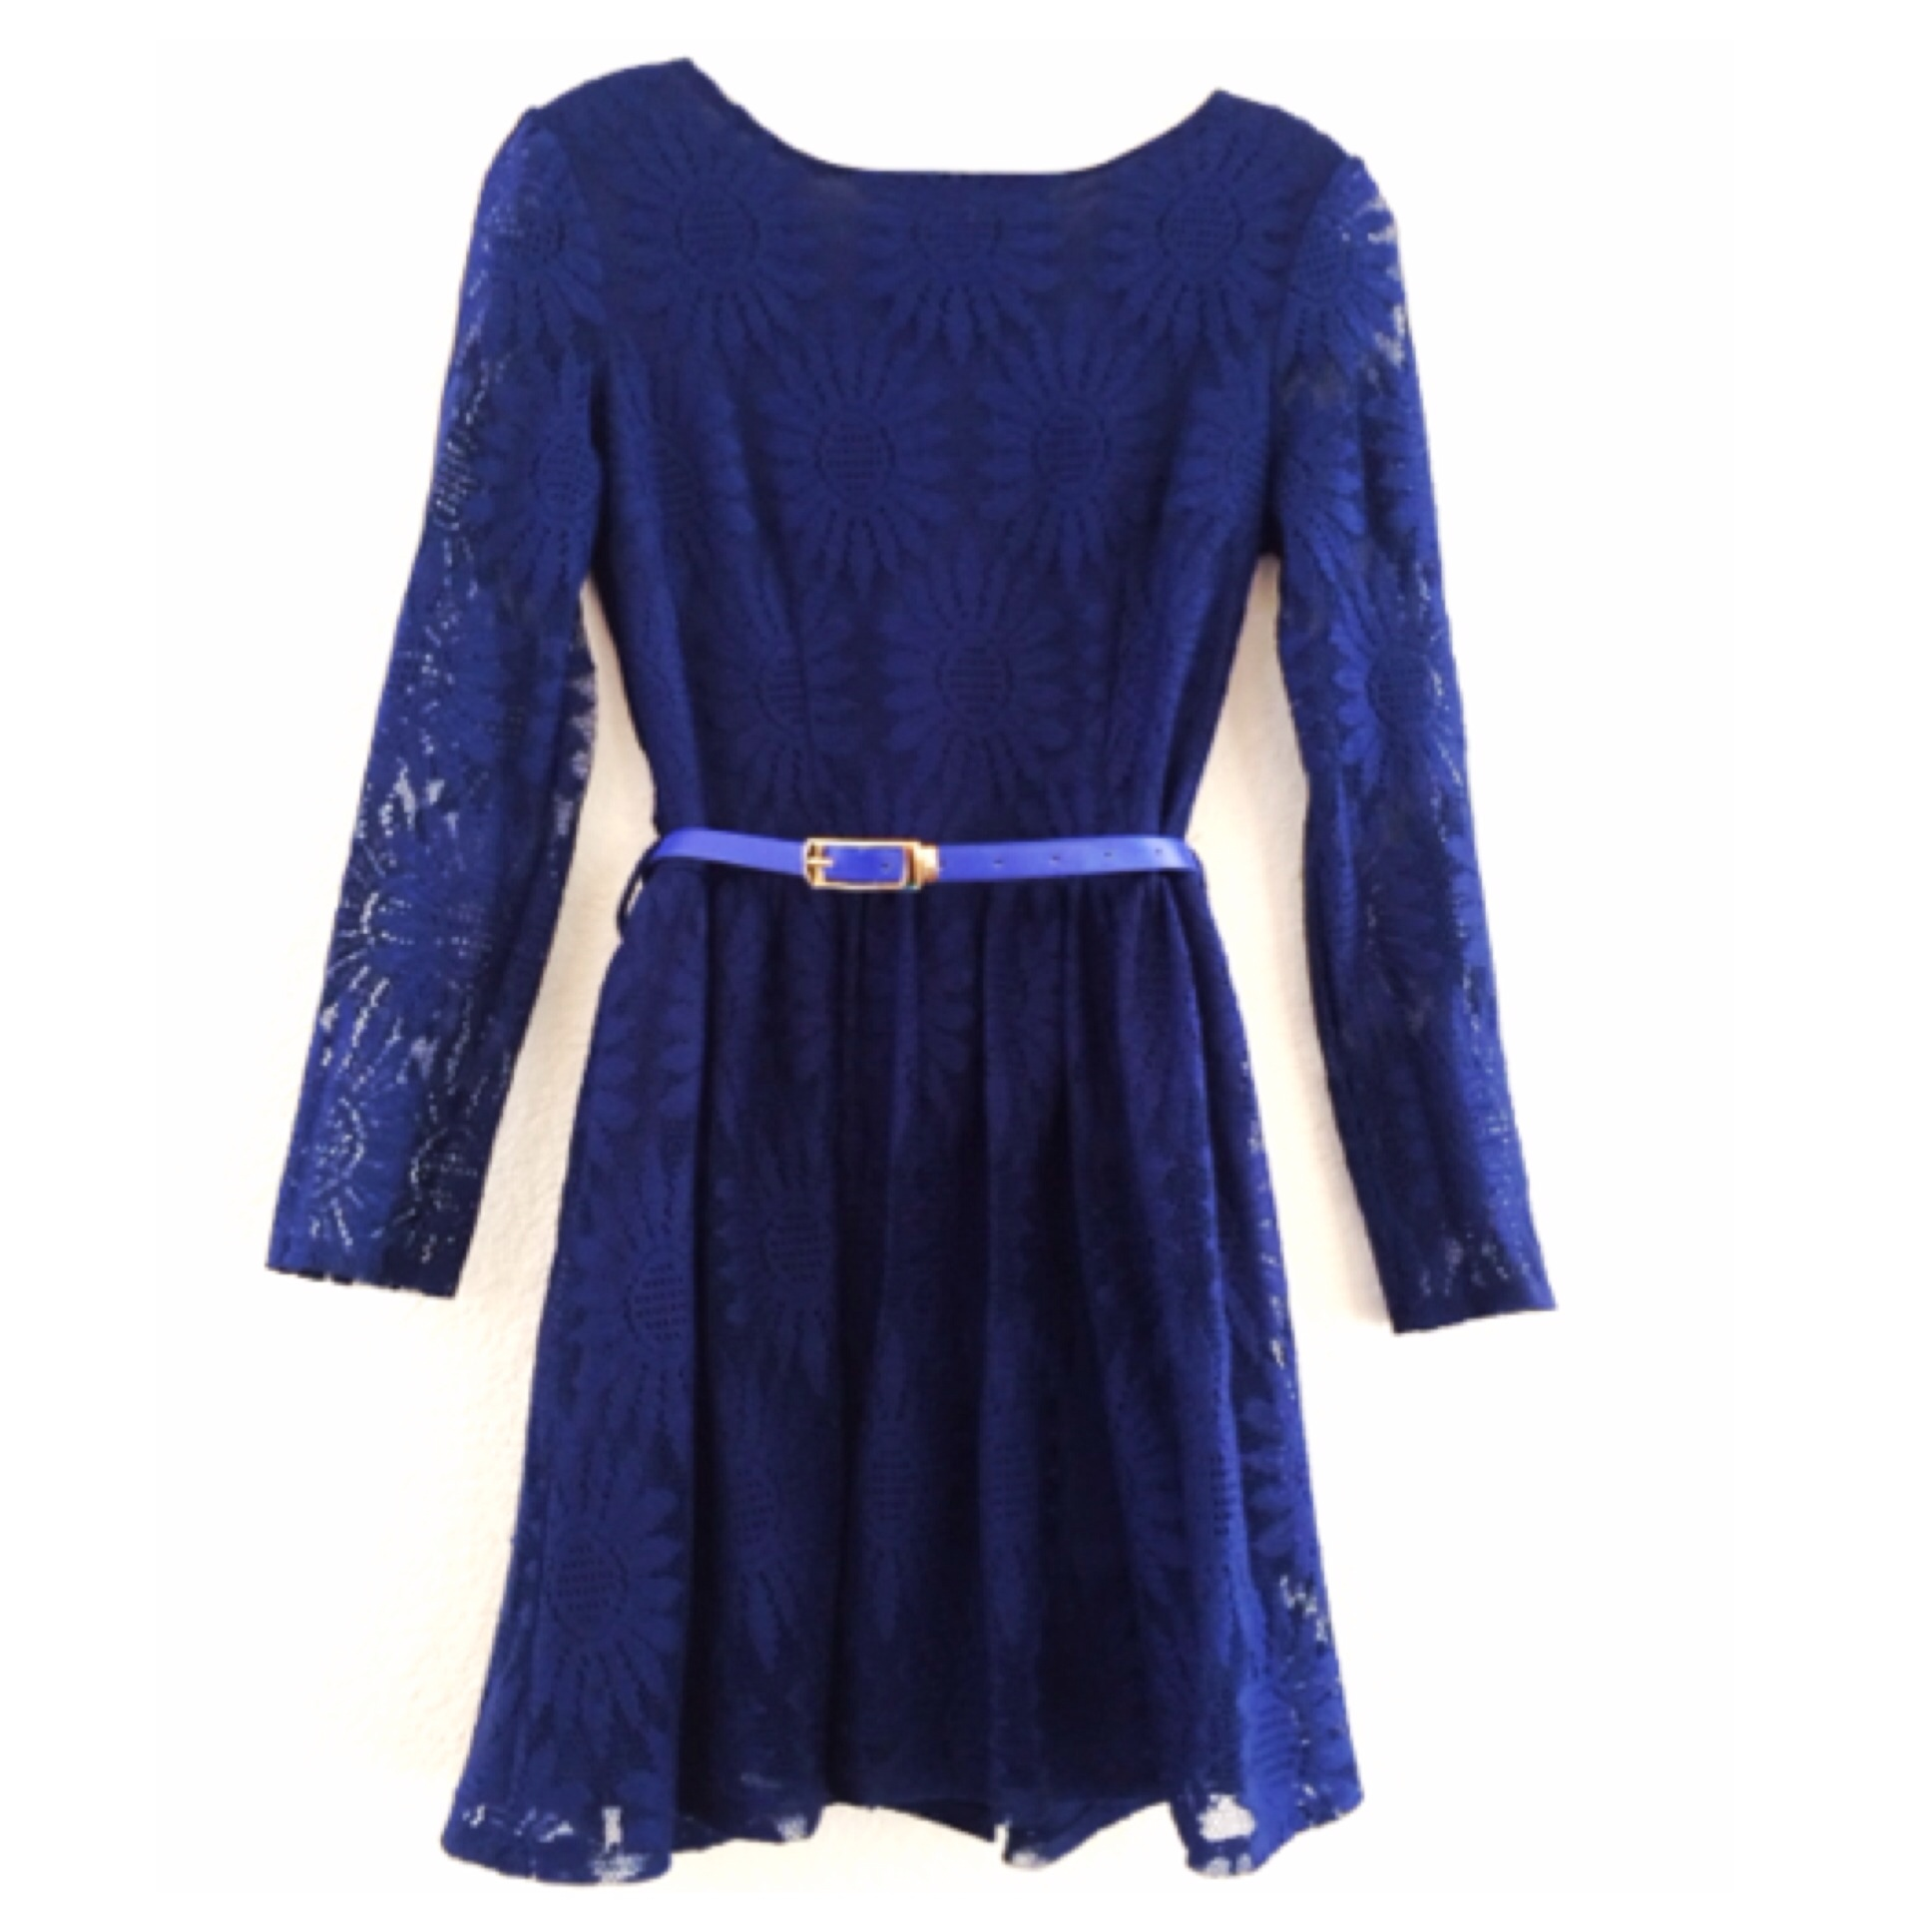 Stunning sunflower embroidery lace belted dress